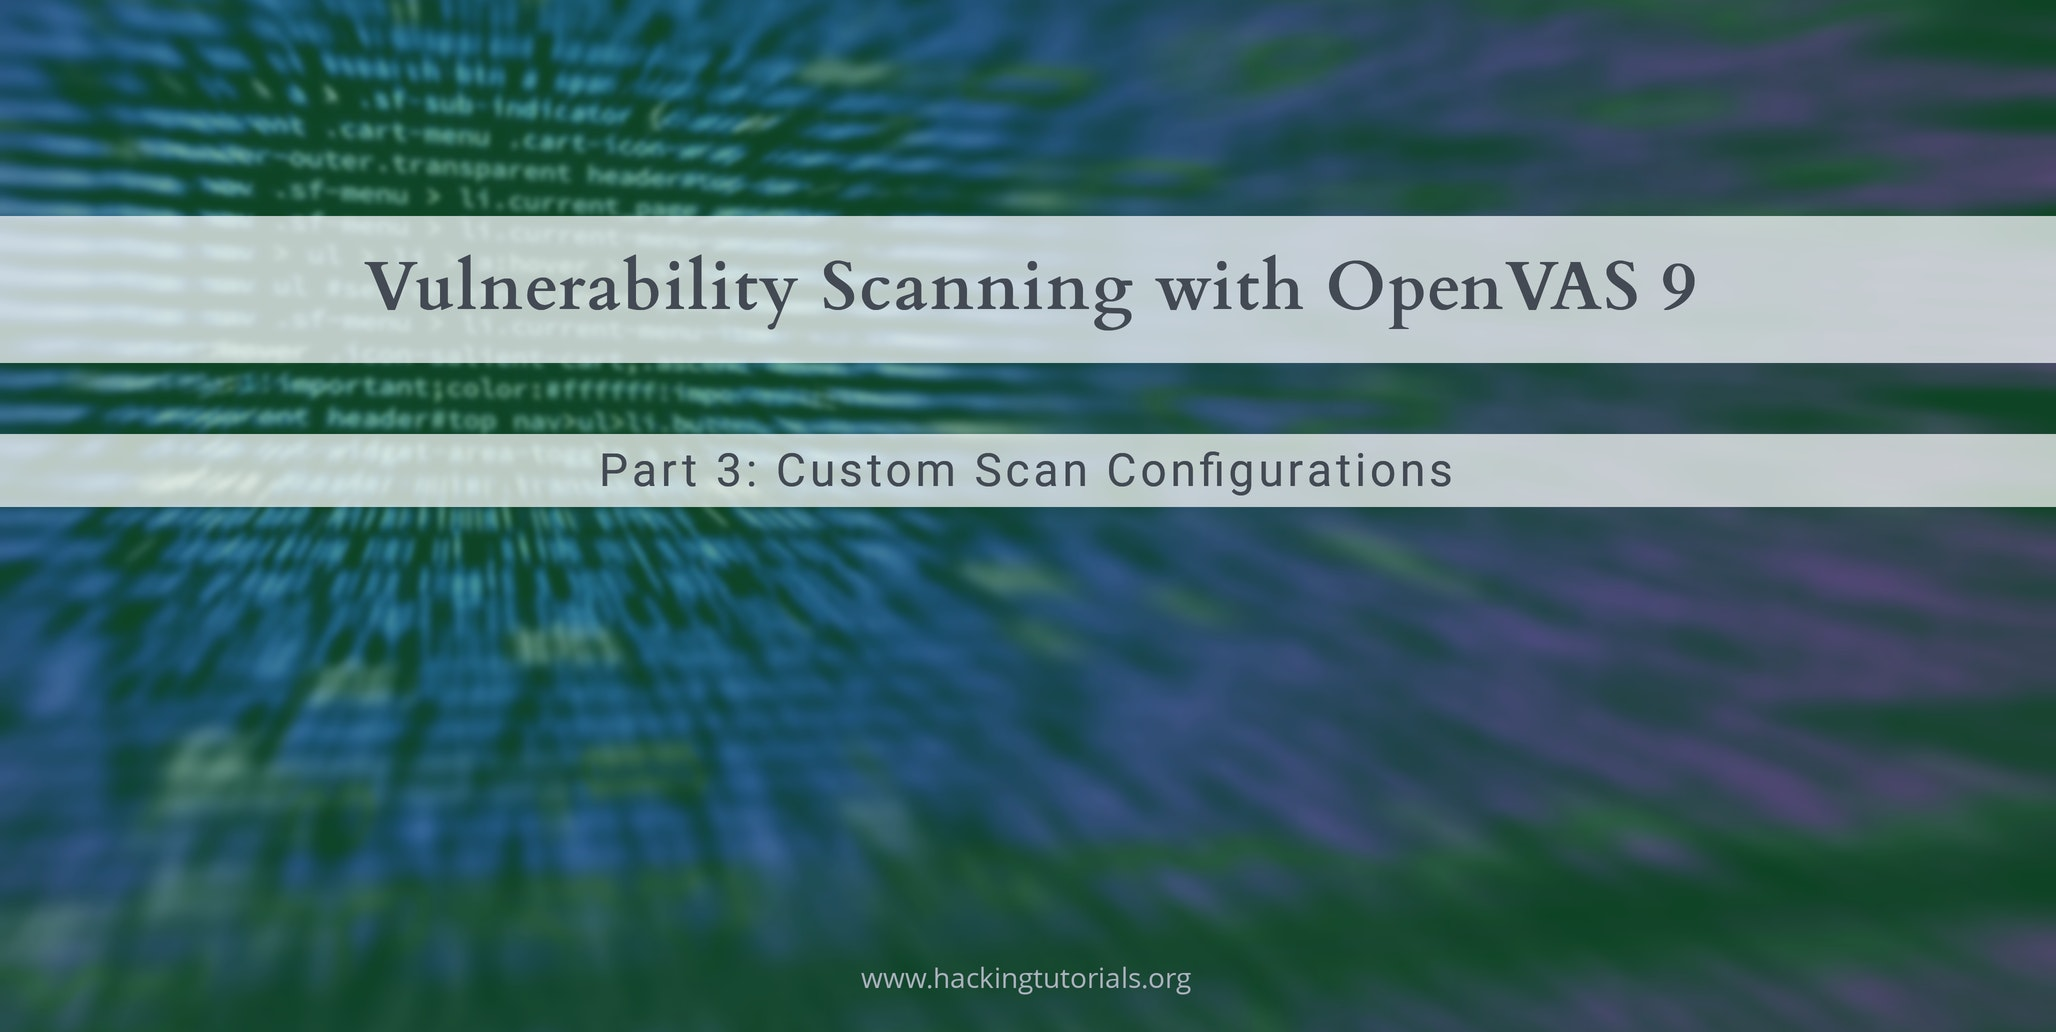 Vulnerability Scanning with OpenVAS 9 part 3: Scanning the